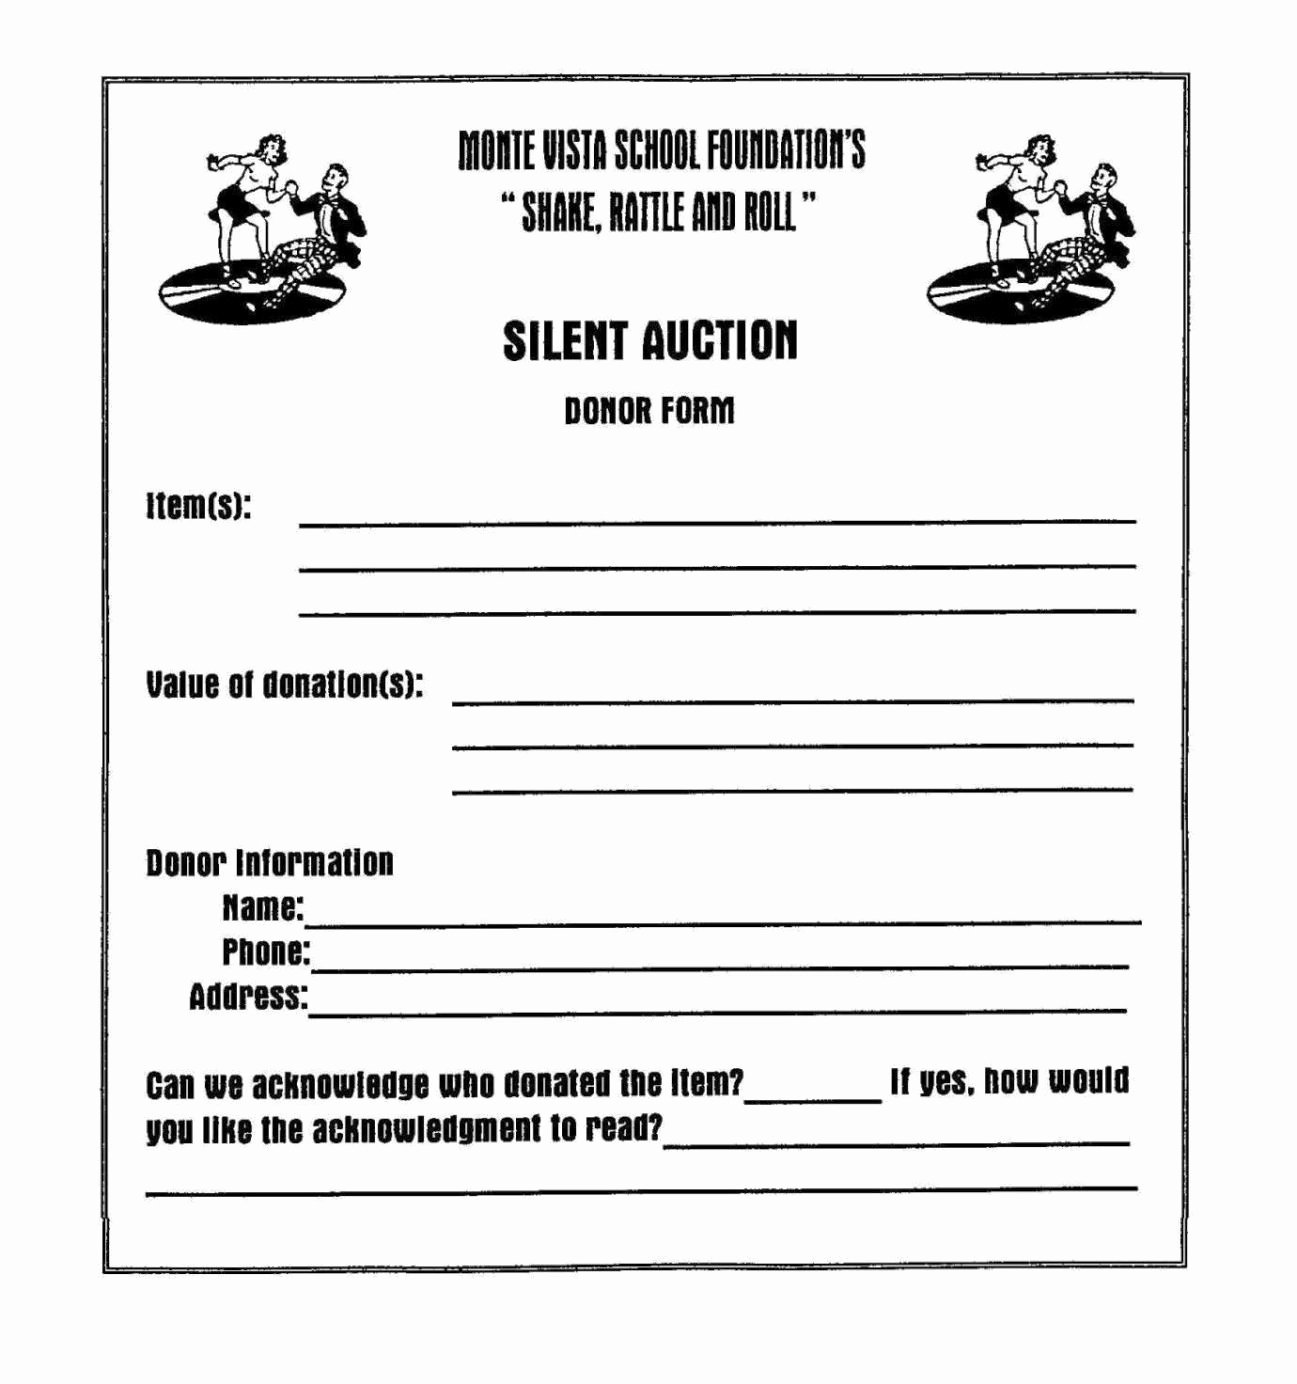 Template for Silent Auction Awesome Silent Auction Donation form Template Sampletemplatess